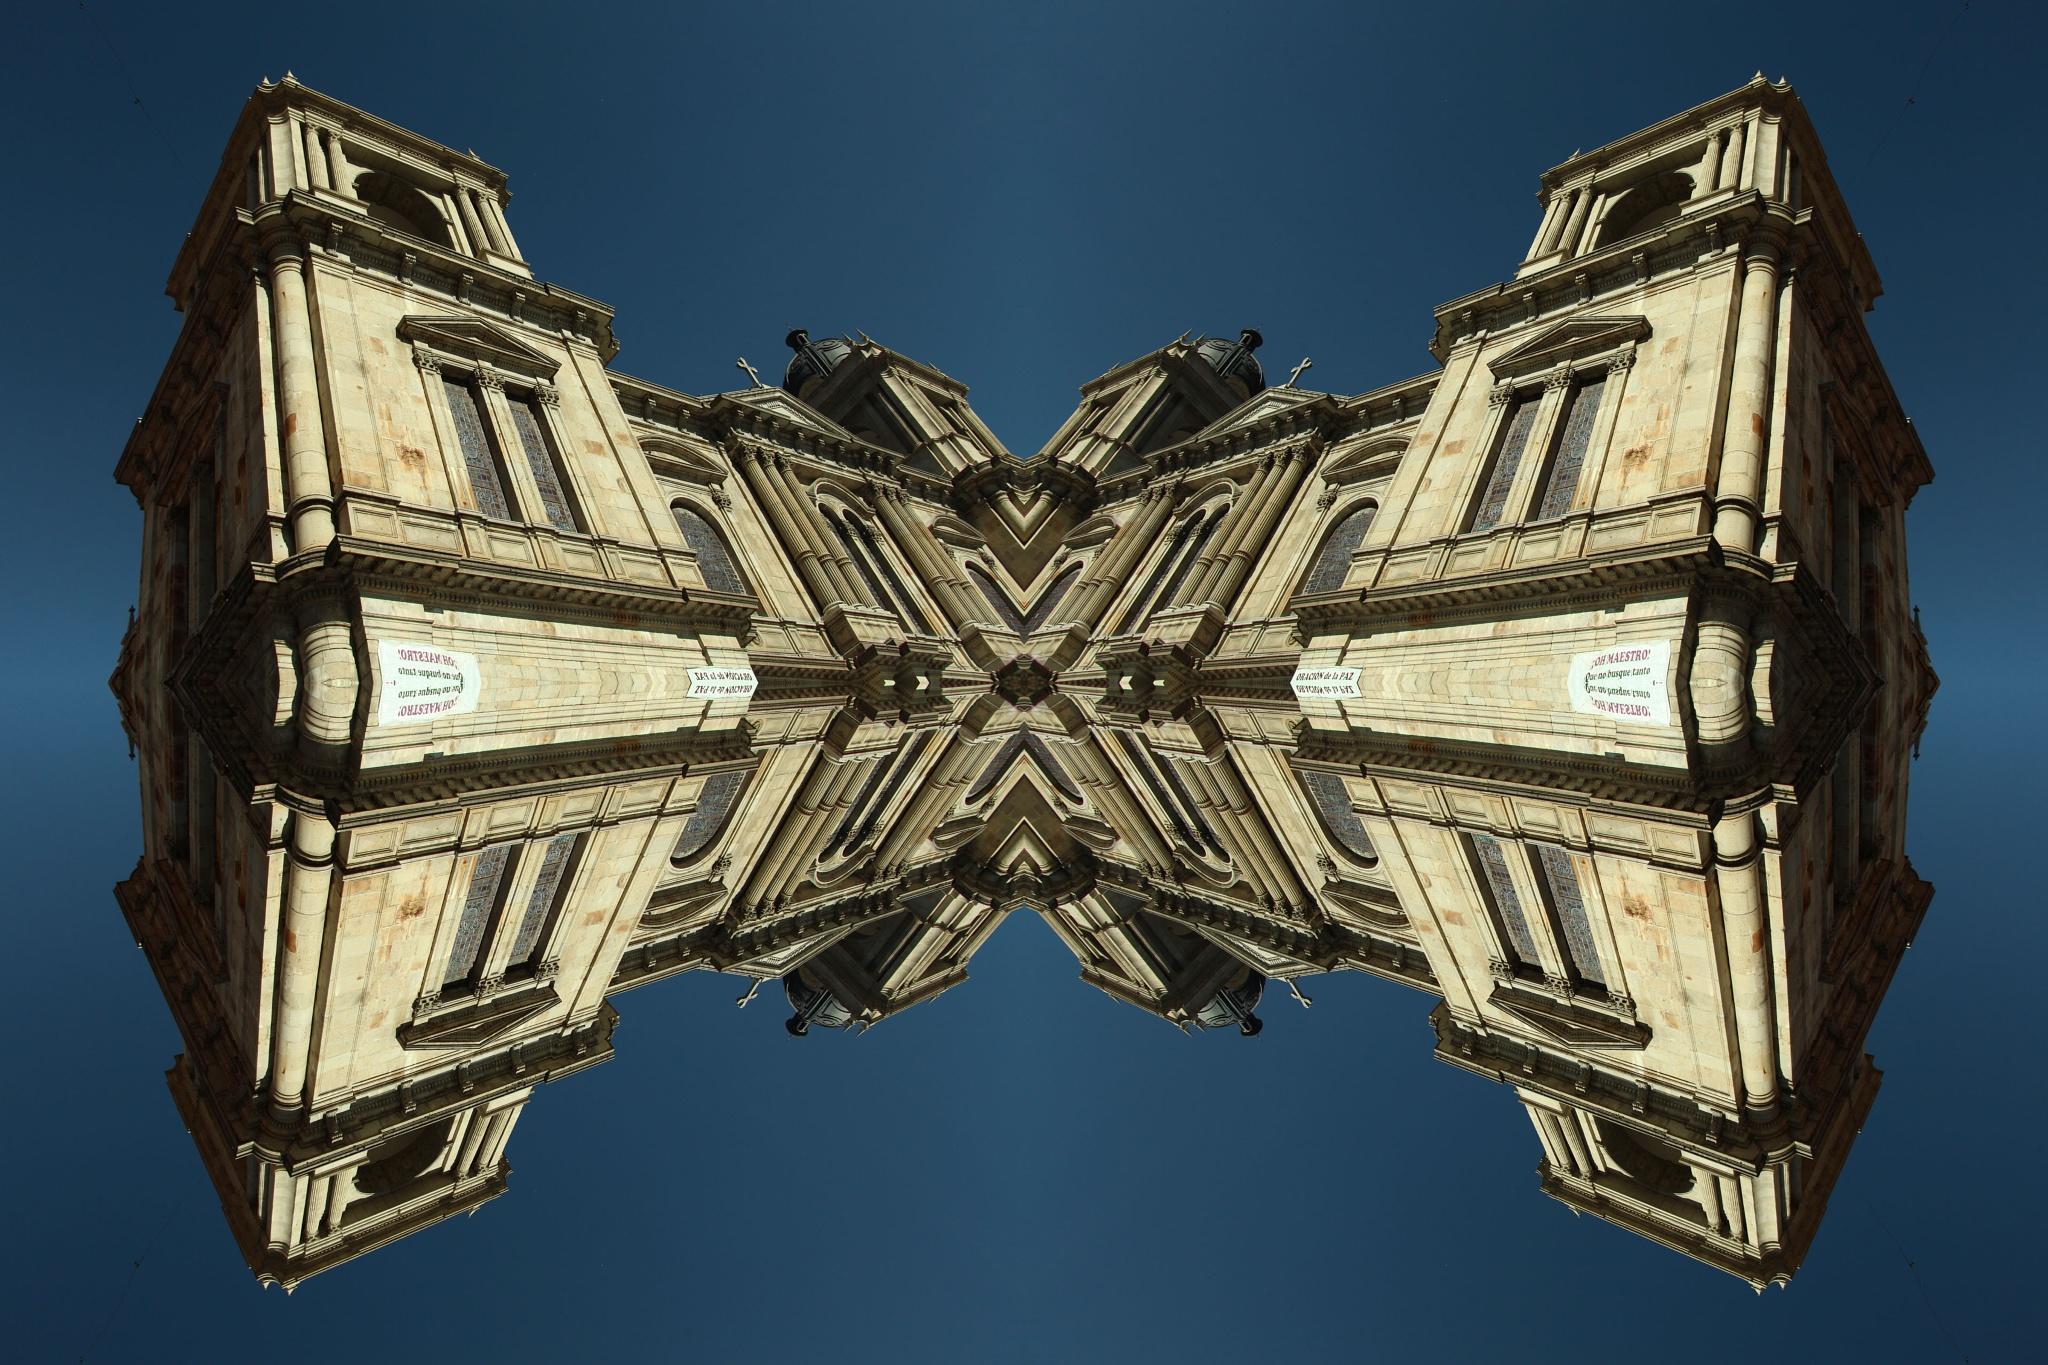 MIRRORS Catedral La Paz by BrandHaus